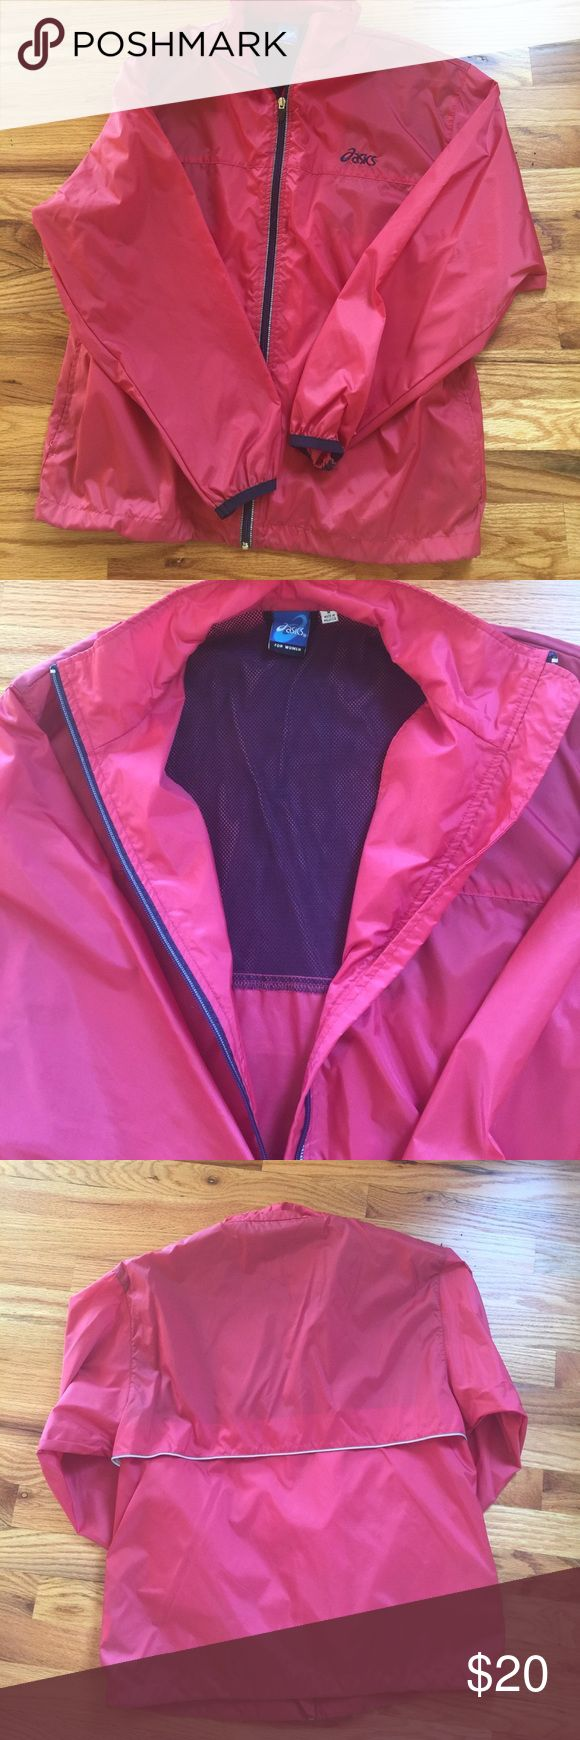 Asics for women windbreaker Asics for women windbreaker. Perfect for running or other outdoor sport. Two zippered pockets to keep your valuables. Never worn Asics Jackets & Coats Utility Jackets